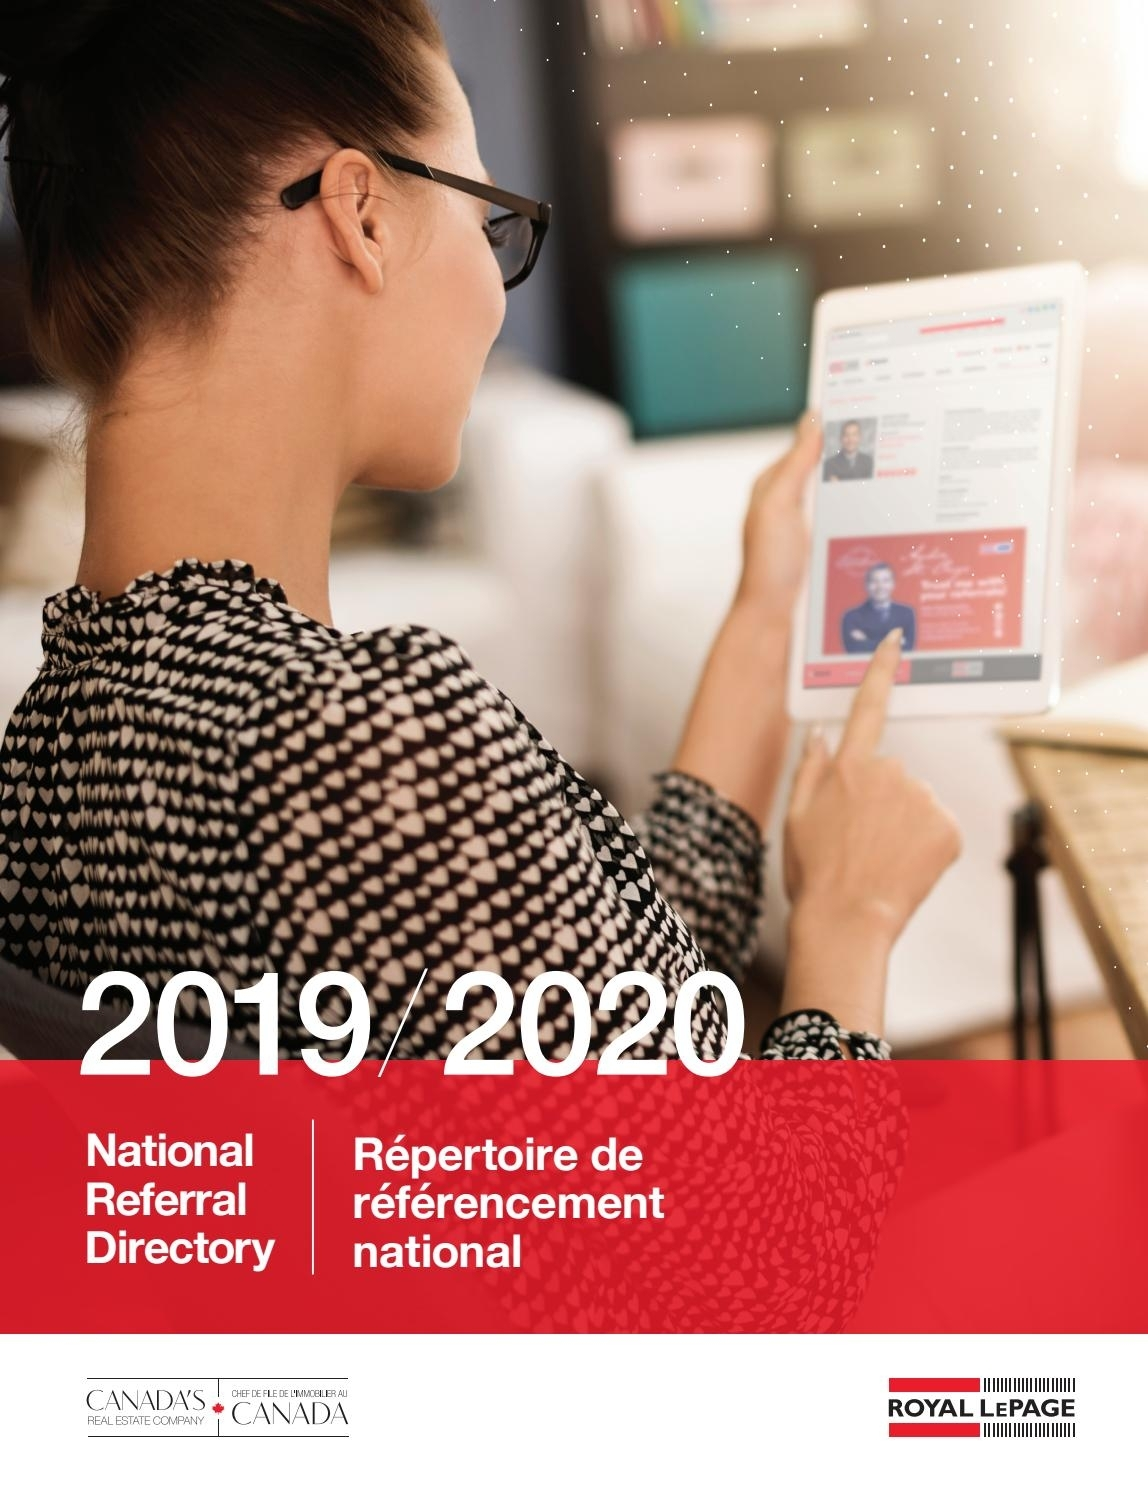 Royal Lepage National Referral Directory 2019-2020 By Royal